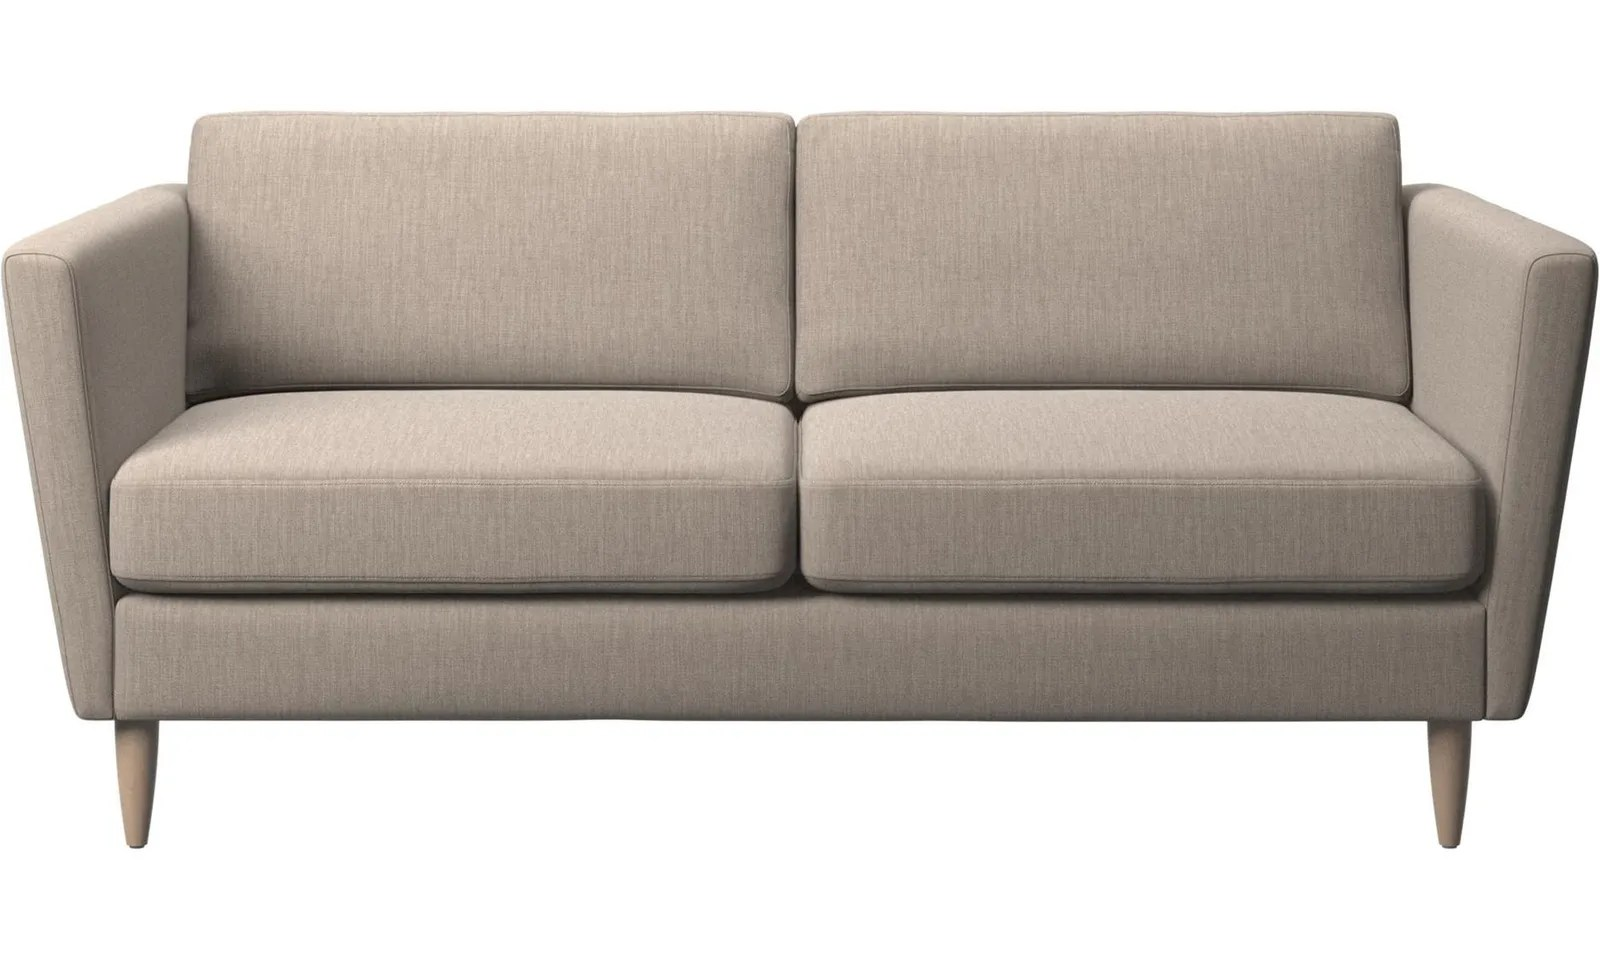 boconcept sleeper sofa review decorating with brick red the best affordable sofas that don t look like pthe osaka in my desiredsub1000colorway p